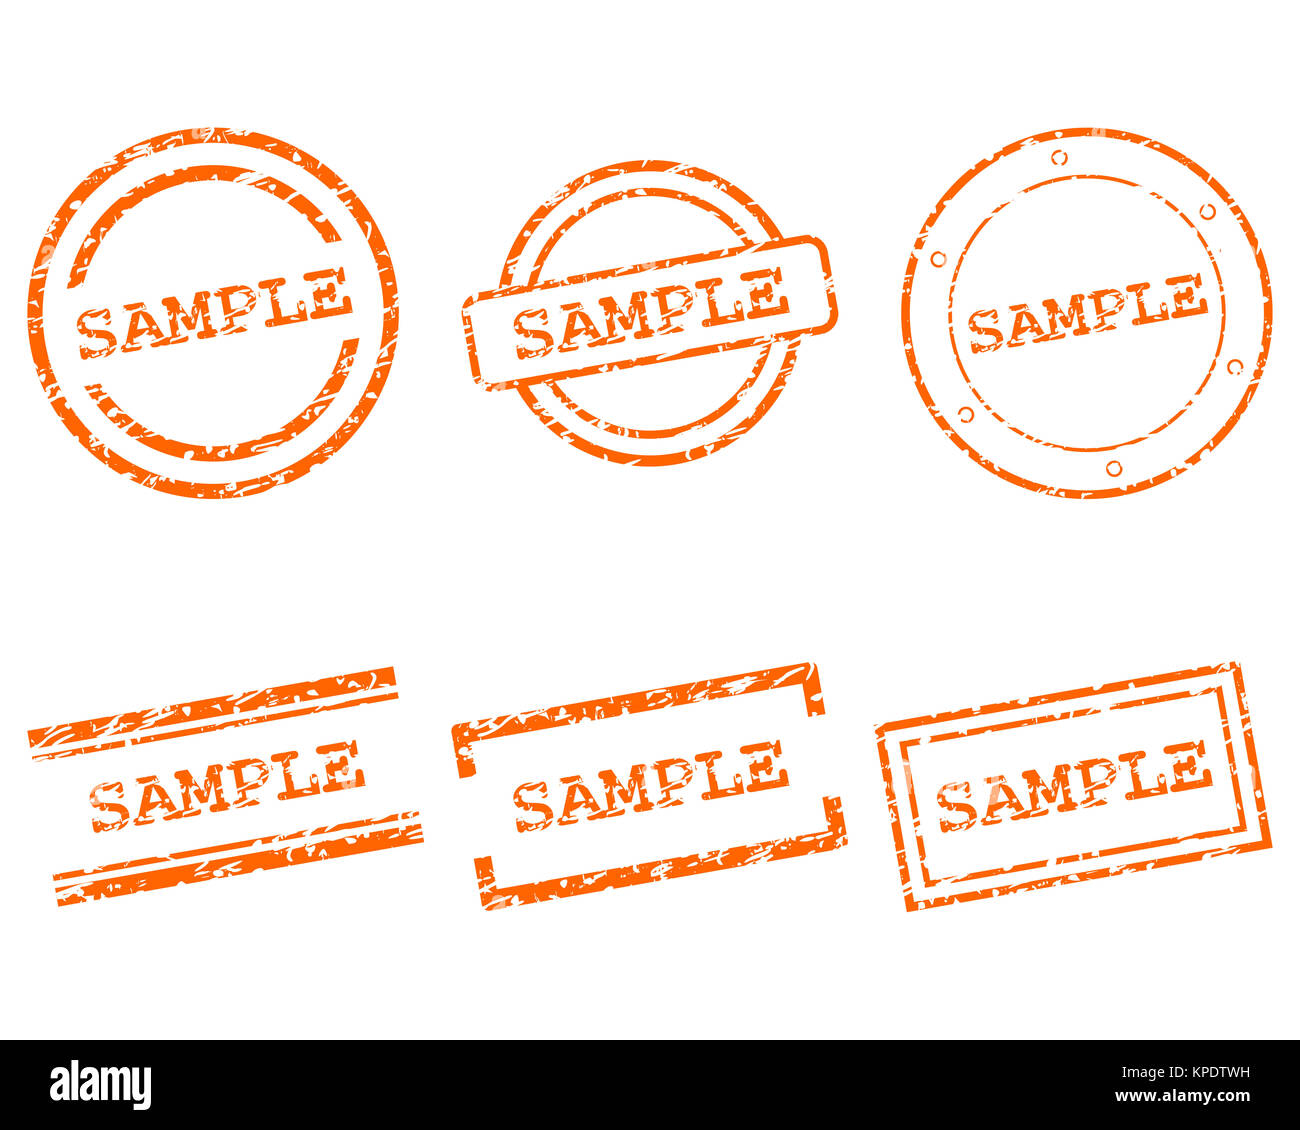 Sample Letters Stock Photos & Sample Letters Stock Images - Alamy